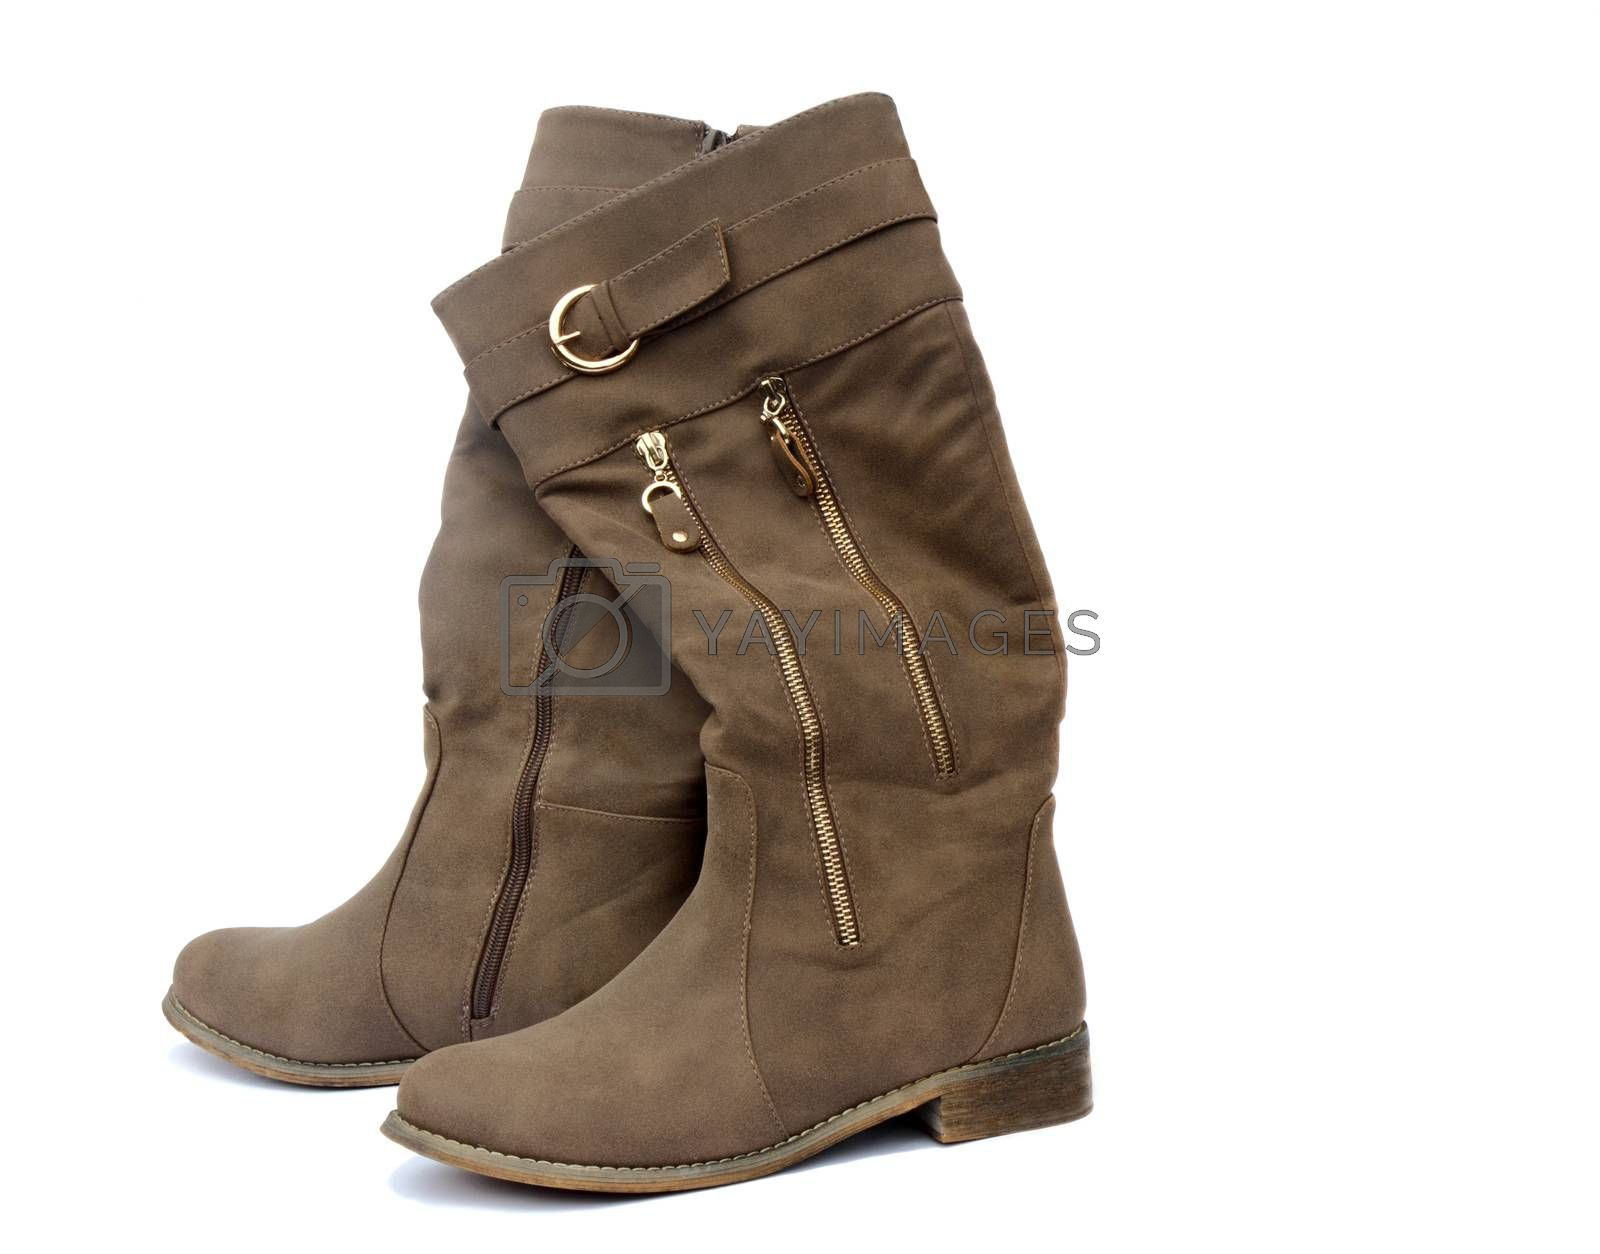 Women's brown soft skin boots with beautiful Chateaux. Presented on a white background